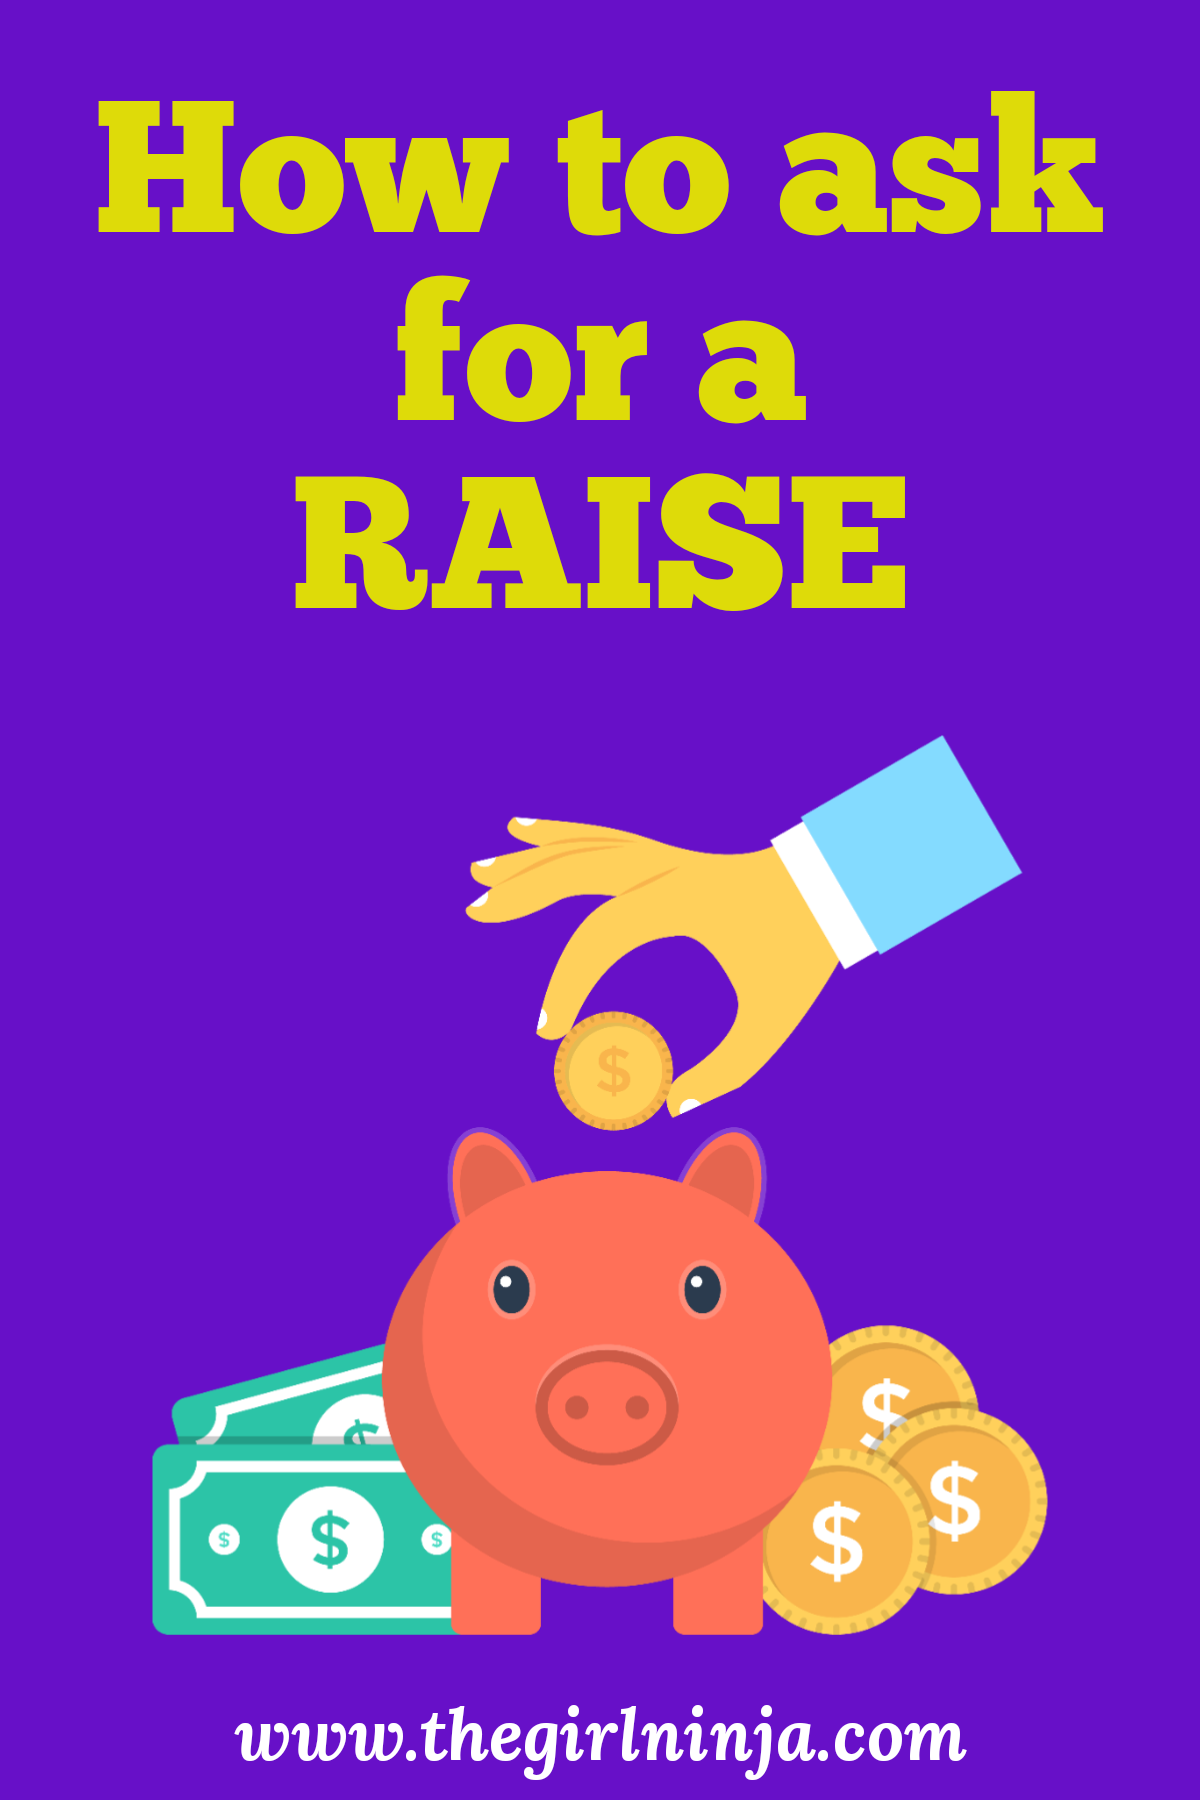 Dark blue rectangle, bright yellow text at top reads How to ask for a RAISE. Below yellow text a hand is holding a gold coin above a piggy bank looking at you. On either side of piggy bank are dollar bills and coins. White text at bottom center reads www.thegirlninja.com